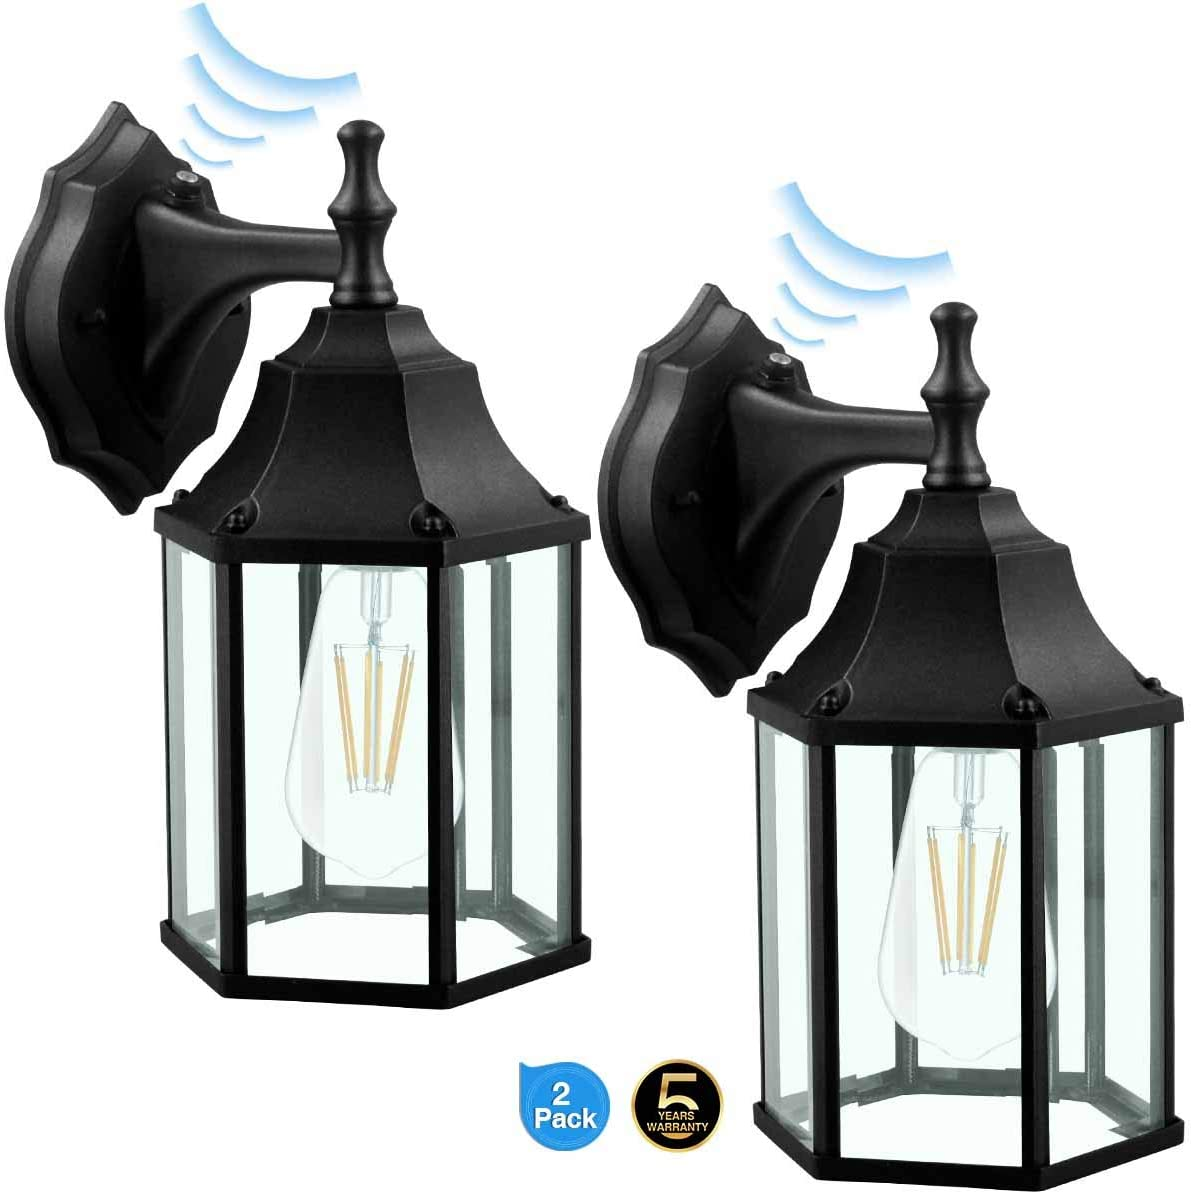 Dusk to Dawn Sensor Outdoor Wall Lantern Wall Sconce as Porch Light, 100-150W Equivalent , 1100 Lumen, Aluminum Housing Plus Glass, Matte Finish, Outdoor Rated,Black for 2Pack 9149